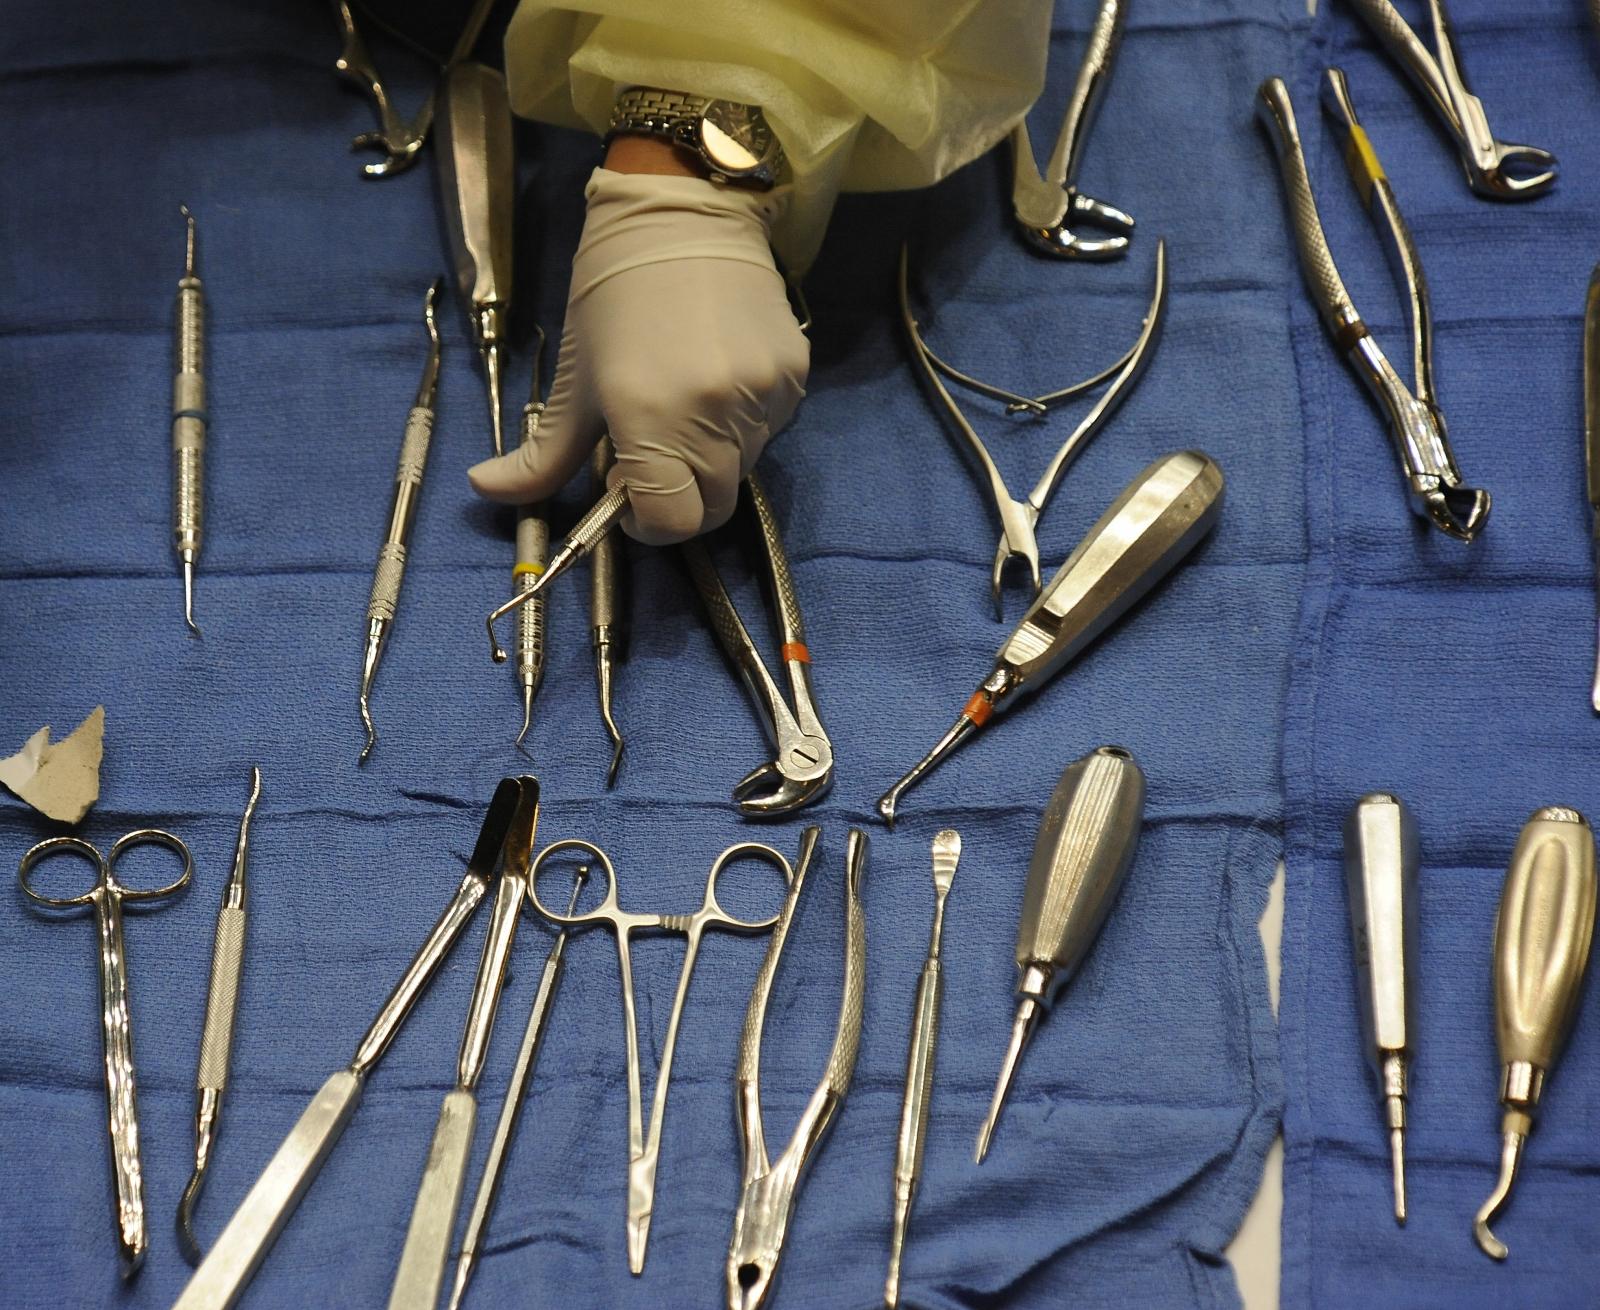 Dental instruments.  AFP PHOTO / Robyn Beck